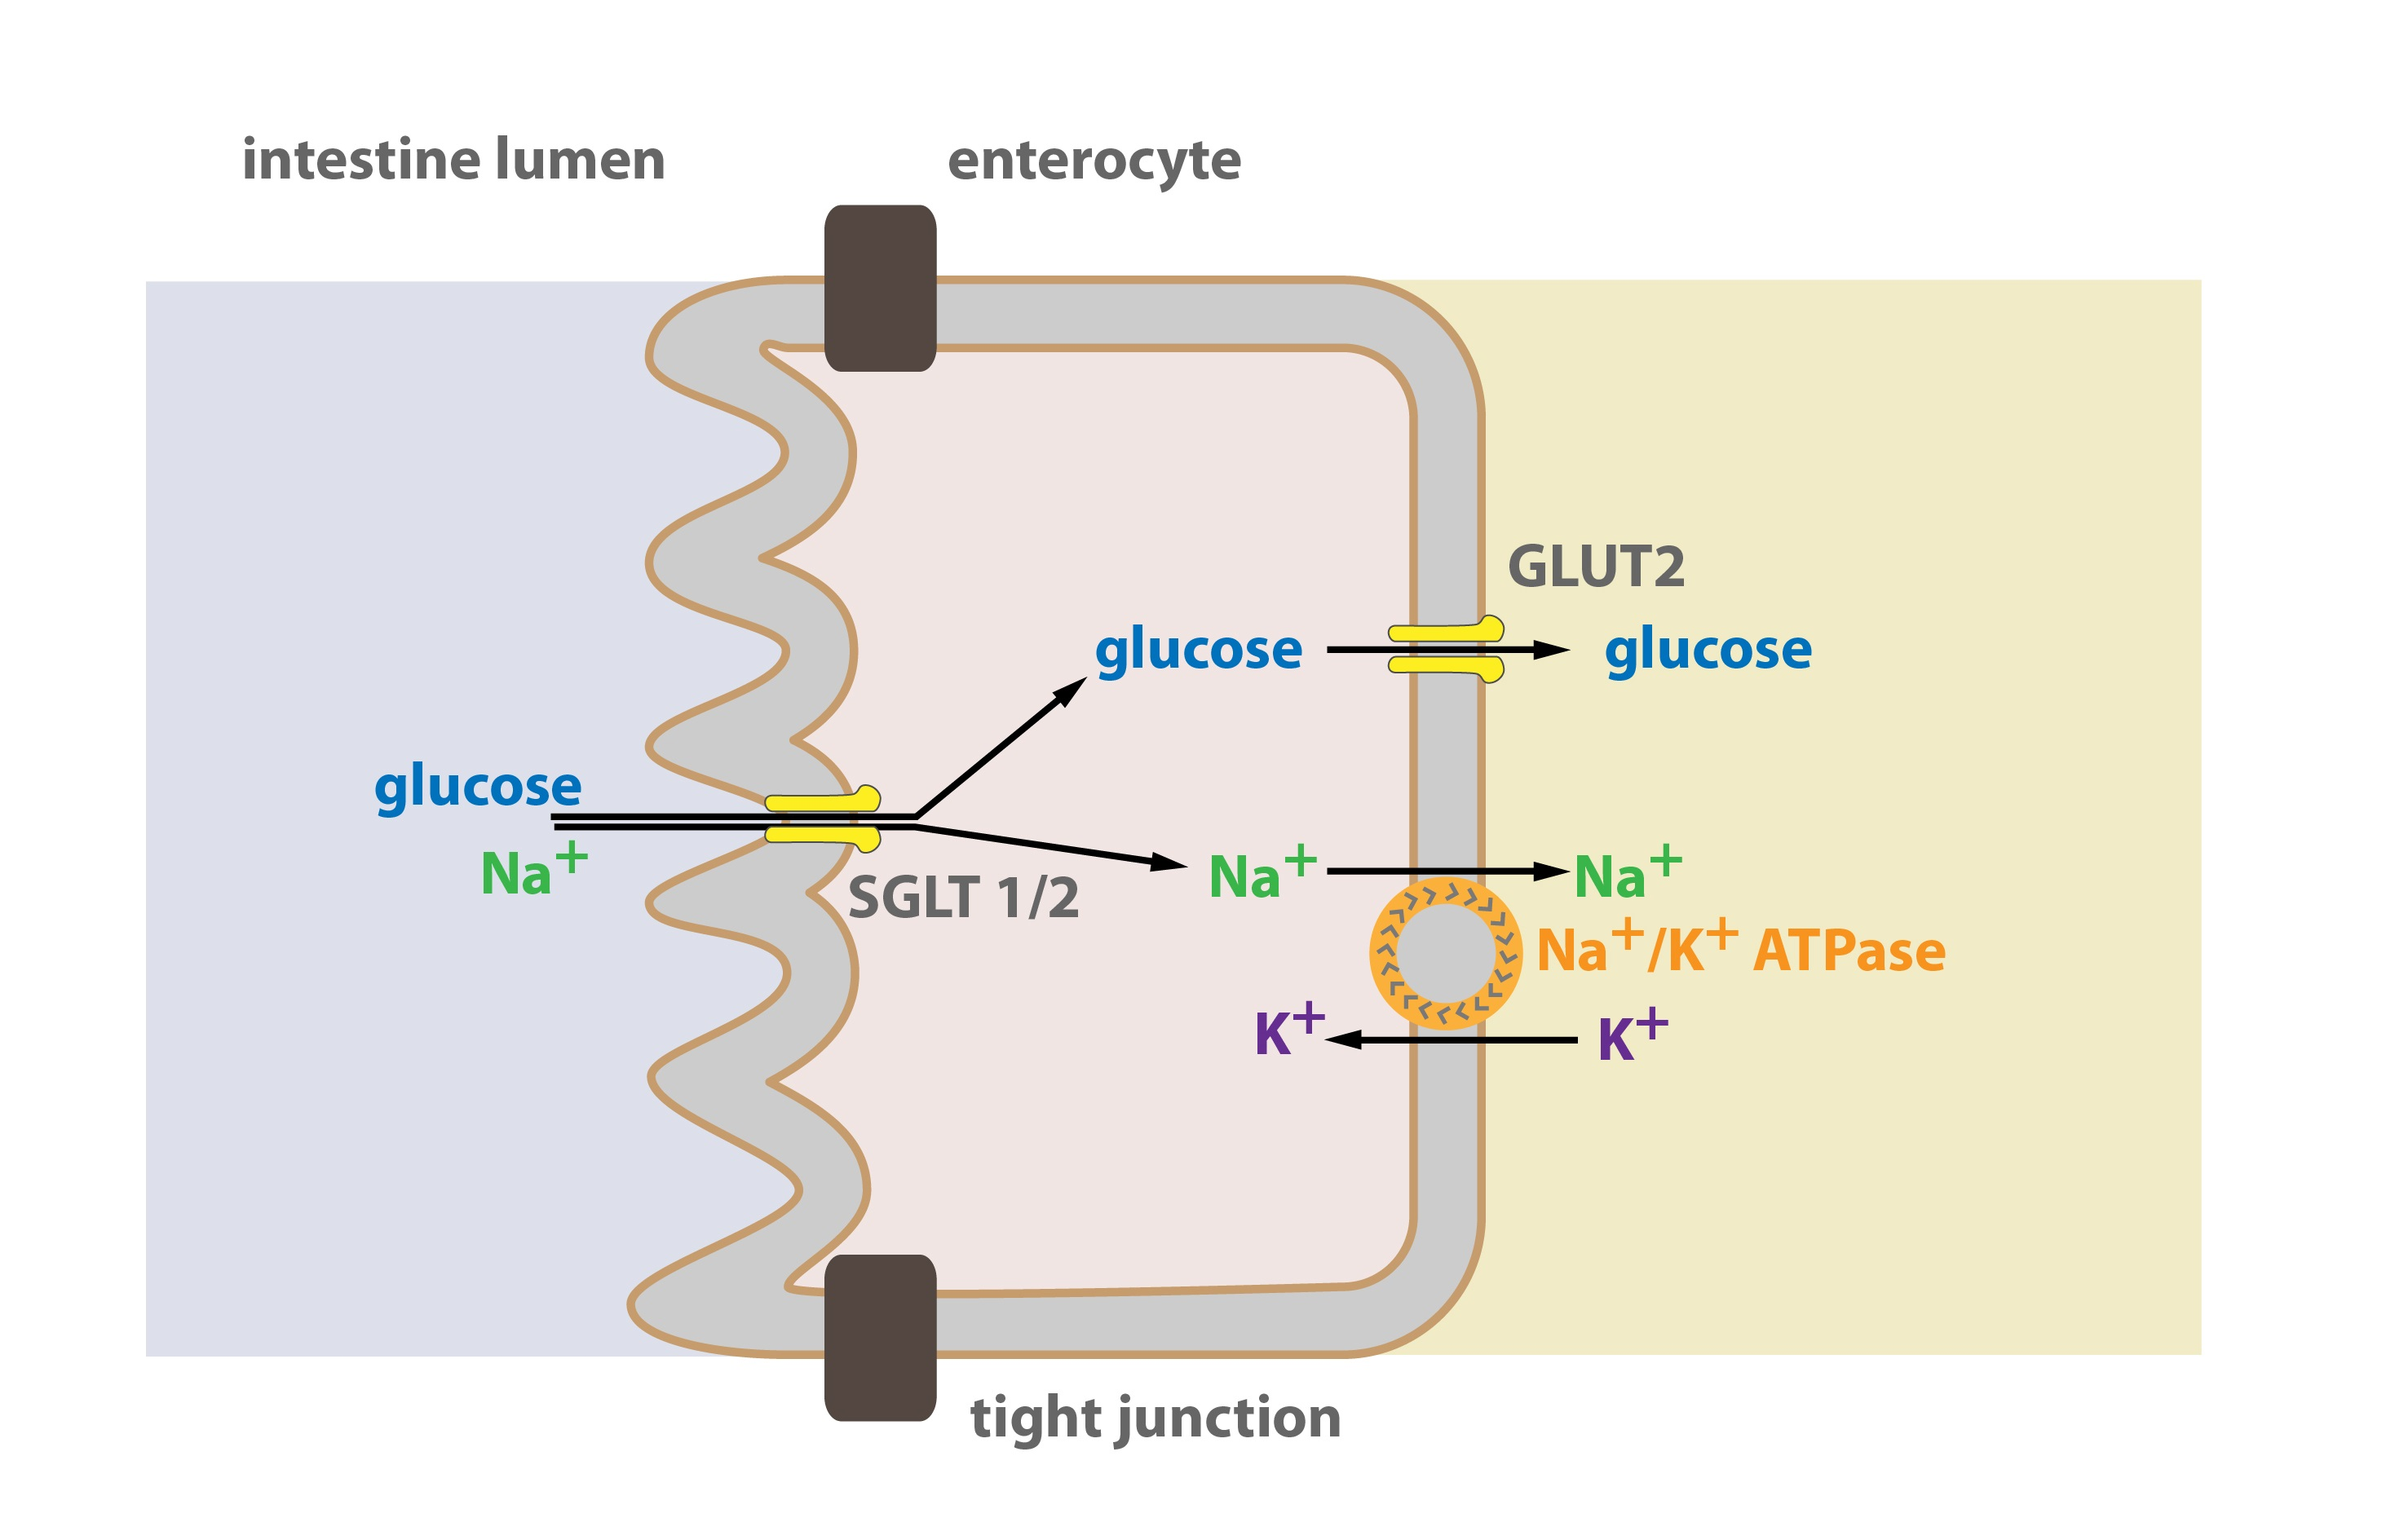 atp resynthesis Clin exp pharmacol physiol 1992 feb19(2):79-87 relationship between atp resynthesis and calcium accumulation in the reperfused rat heart hasin y(1), kneen mm, craik dj, nayler wg author information: (1)department of medicine, university of melbourne, austin hospital, heidelberg, victoria, australia 1.